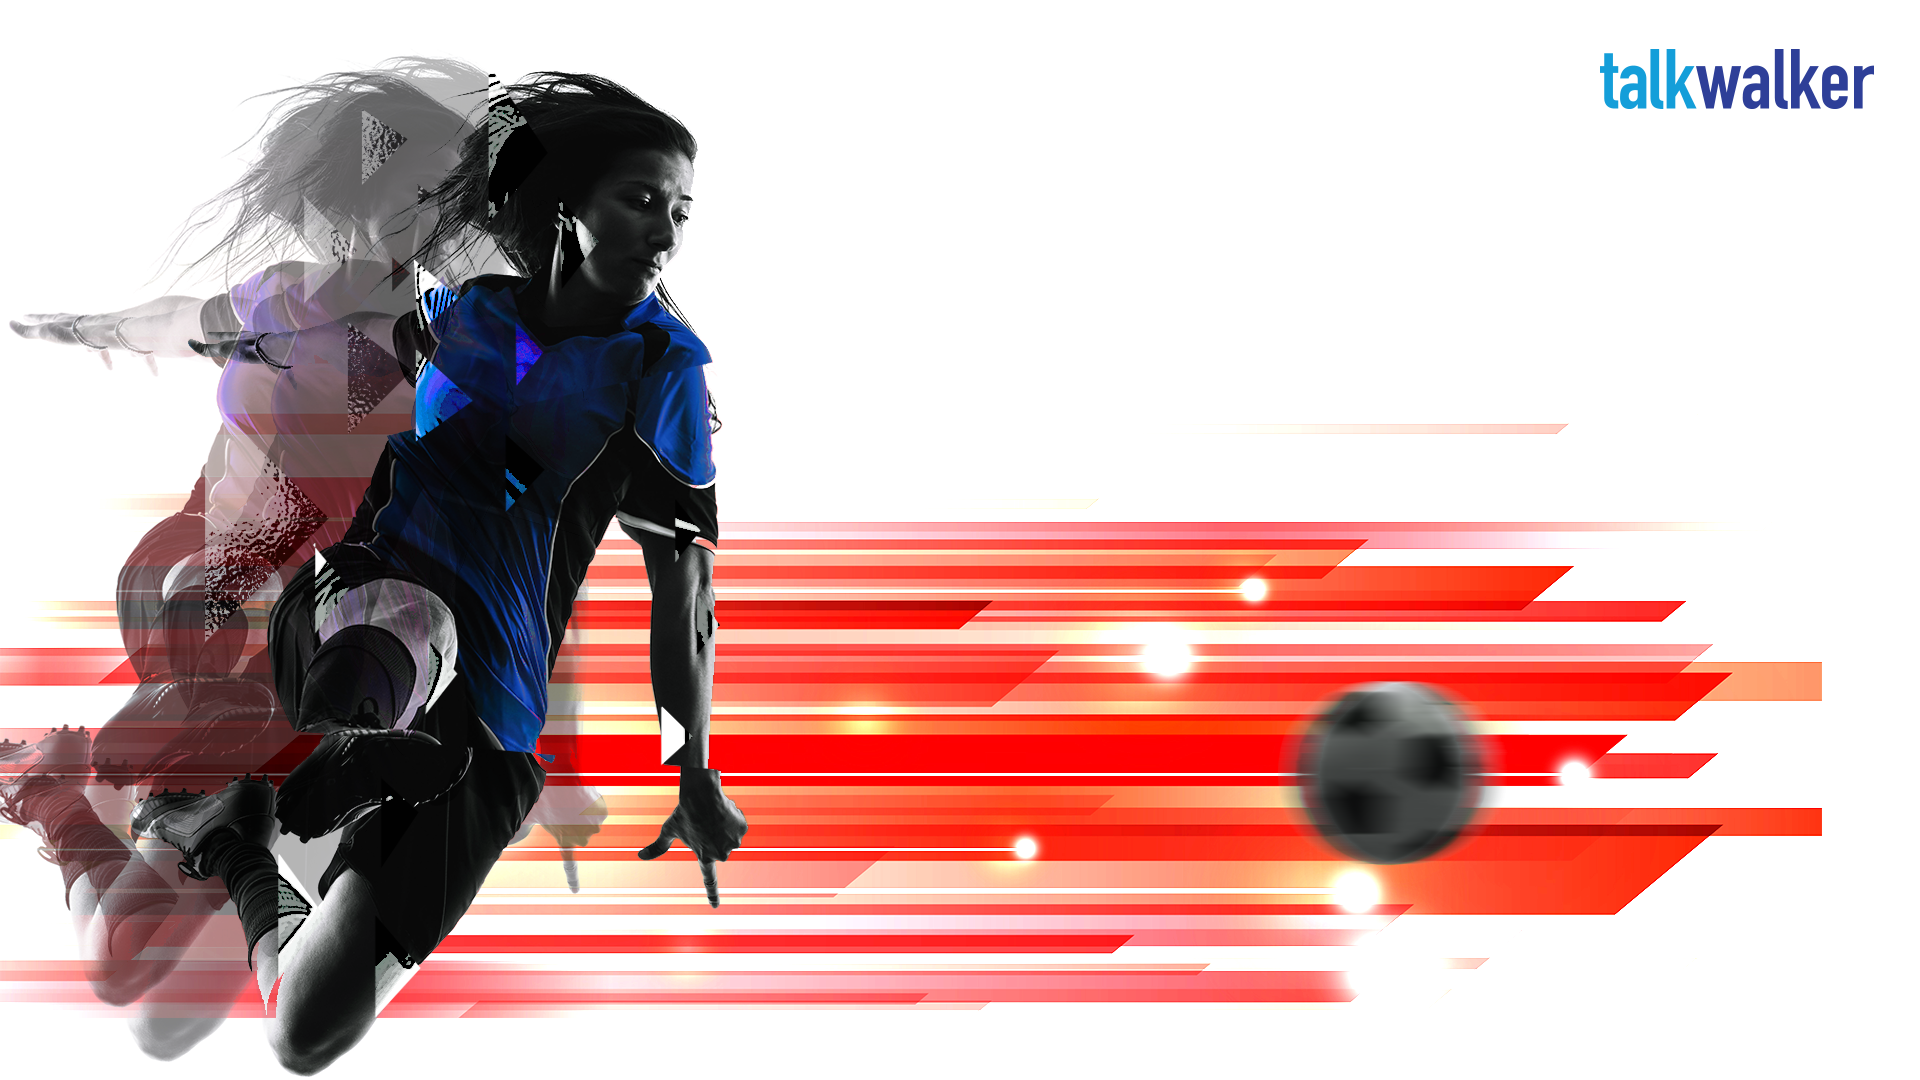 Depiction of a women's soccer player at the FIFA world cup with a social data twist